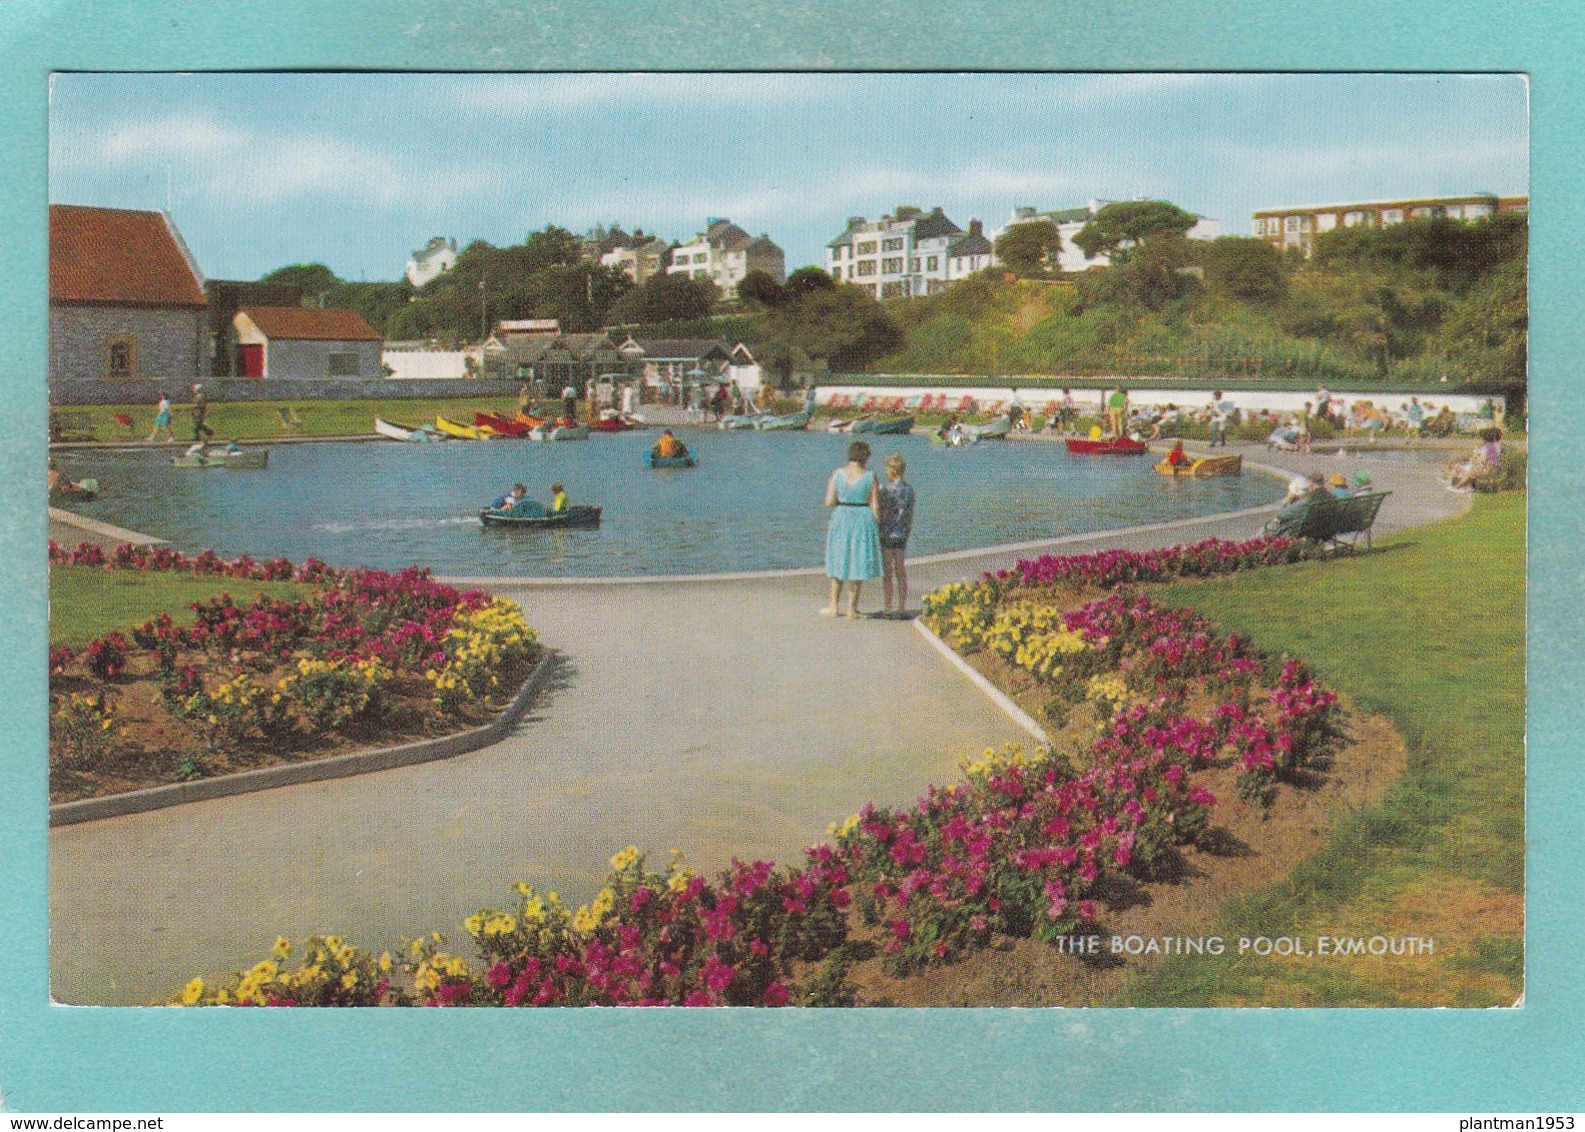 Old Small Post Card Of The Boating Pool,Exmouth,N66. - Other